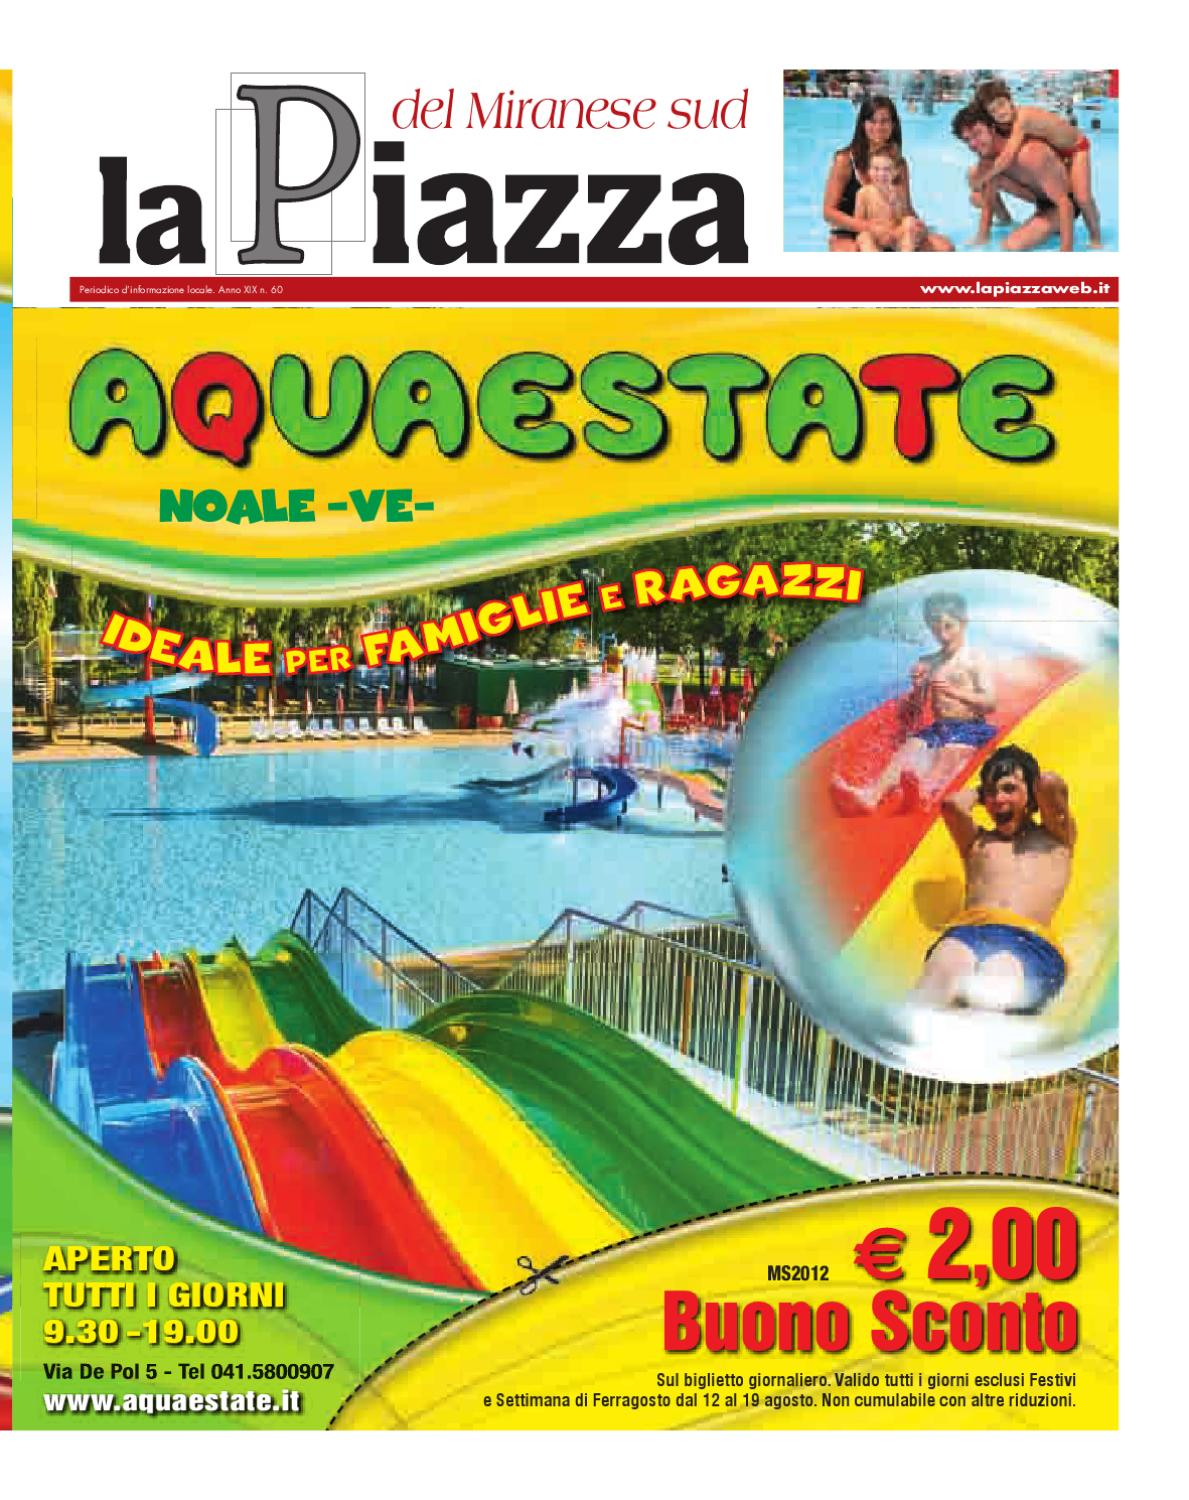 La Piazza Del Miranese Sud 2012mag N60 By Lapiazza Give